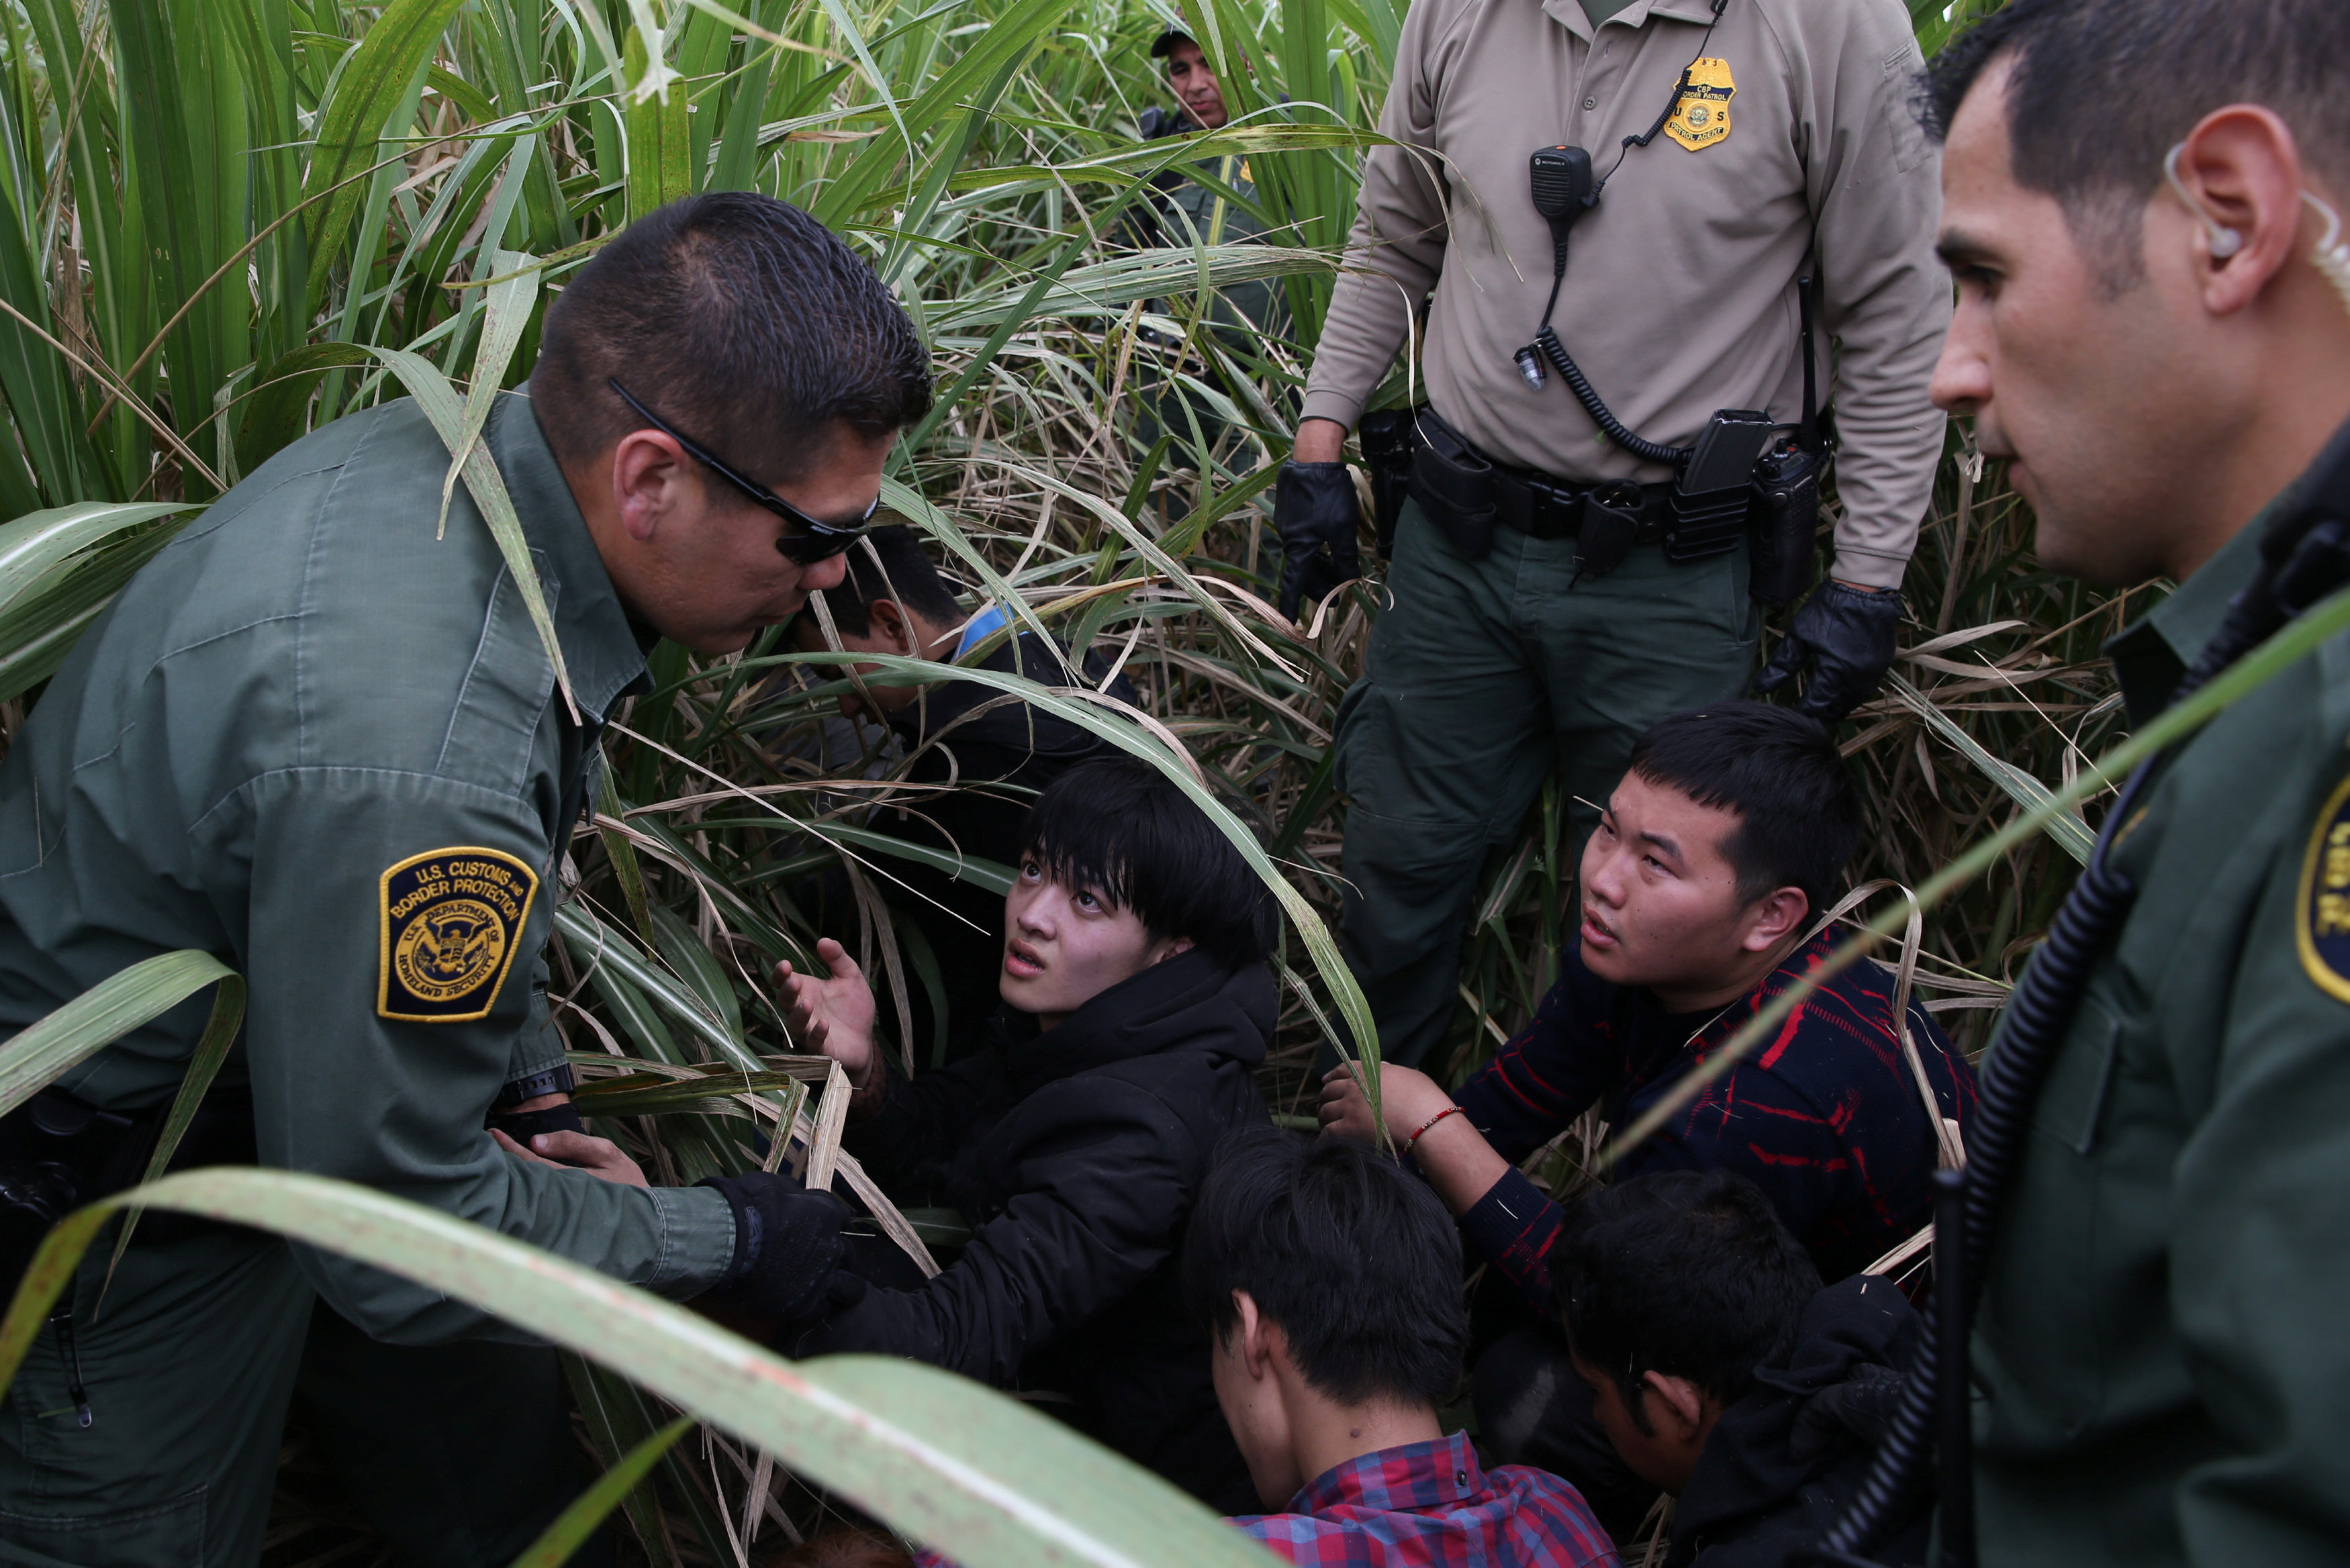 Border patrol agents apprehend immigrants who illegally crossed the border from Mexico into the U.S. in the Rio Grande Valley sector, near McAllen, Texas, U.S., April 3, 2018. REUTERS/Loren Elliott